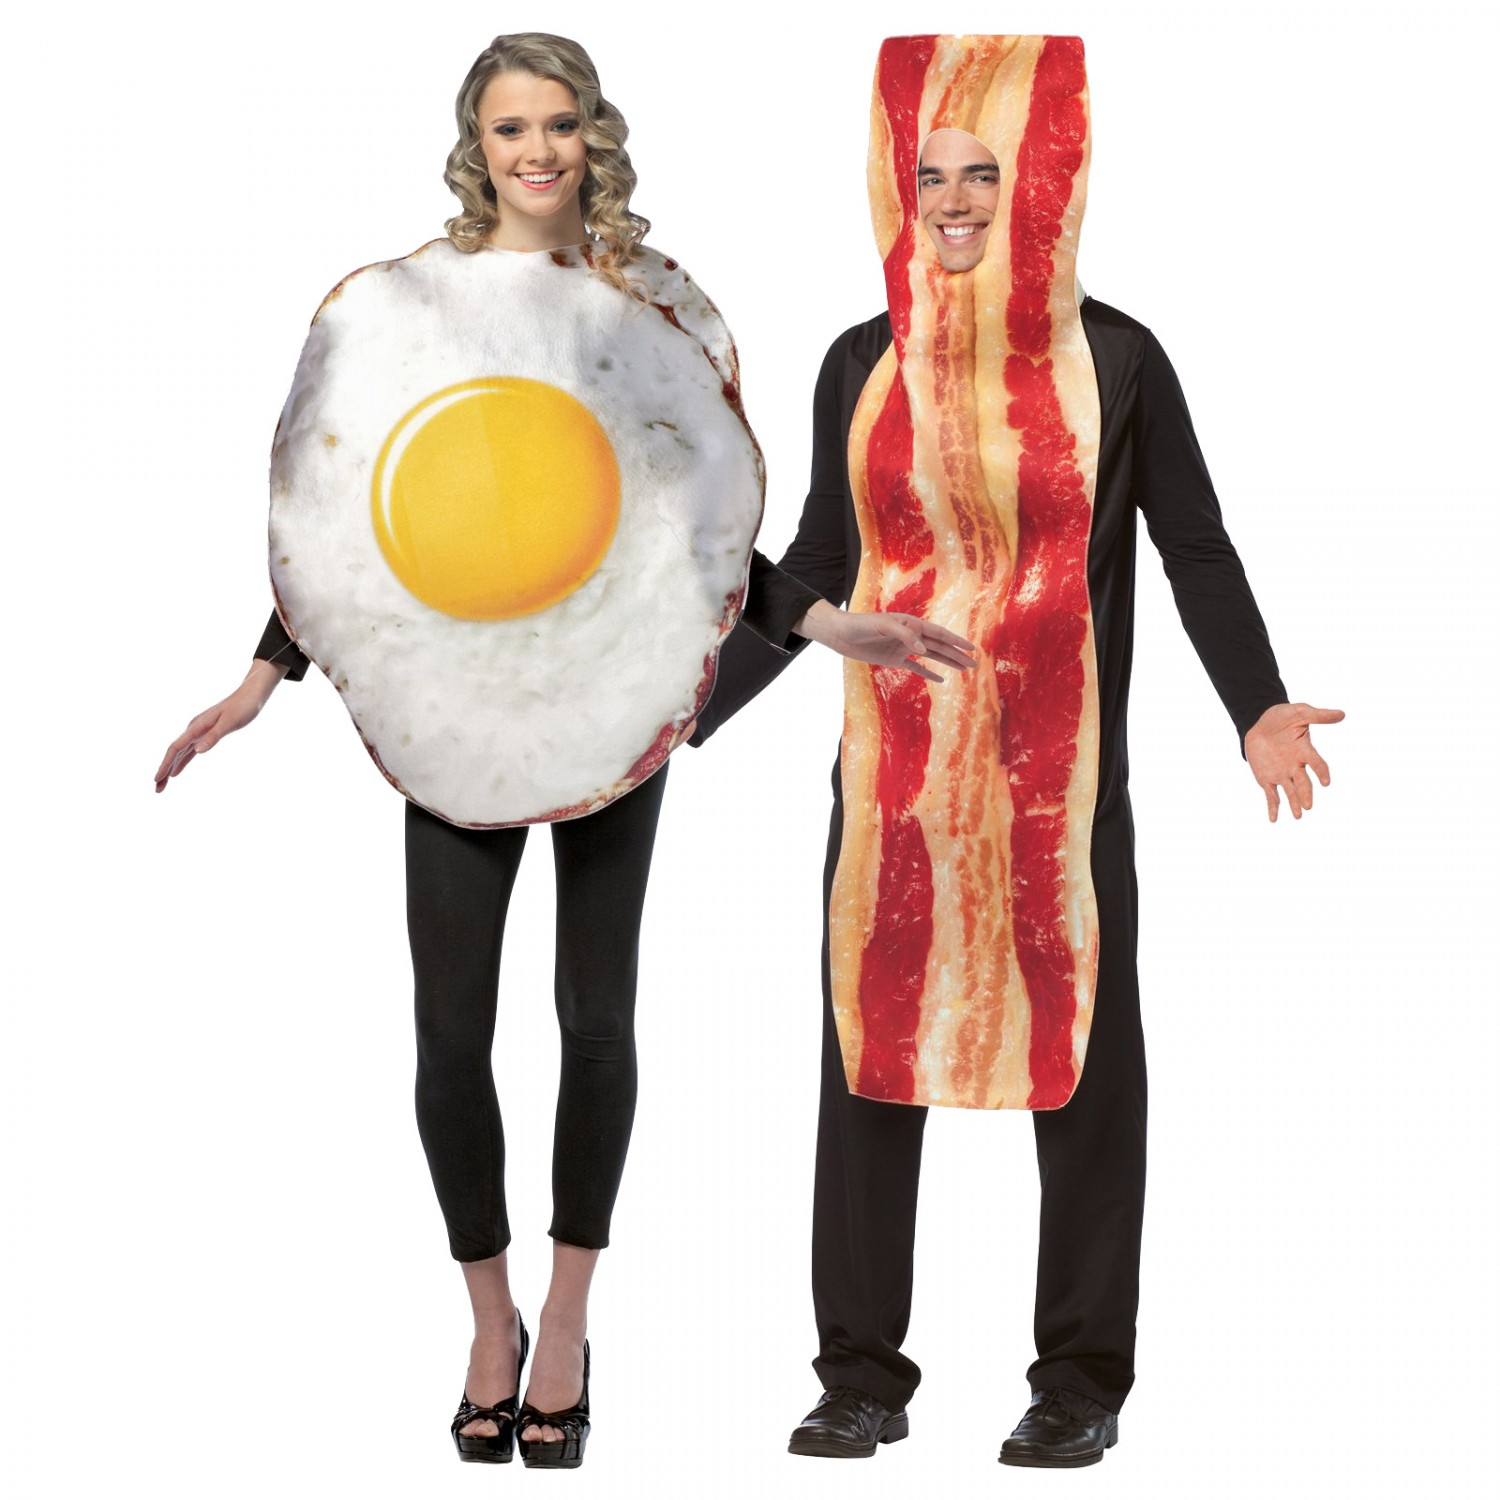 10 CrossFit Costumes That Are Perfect For Your Box's Next ...